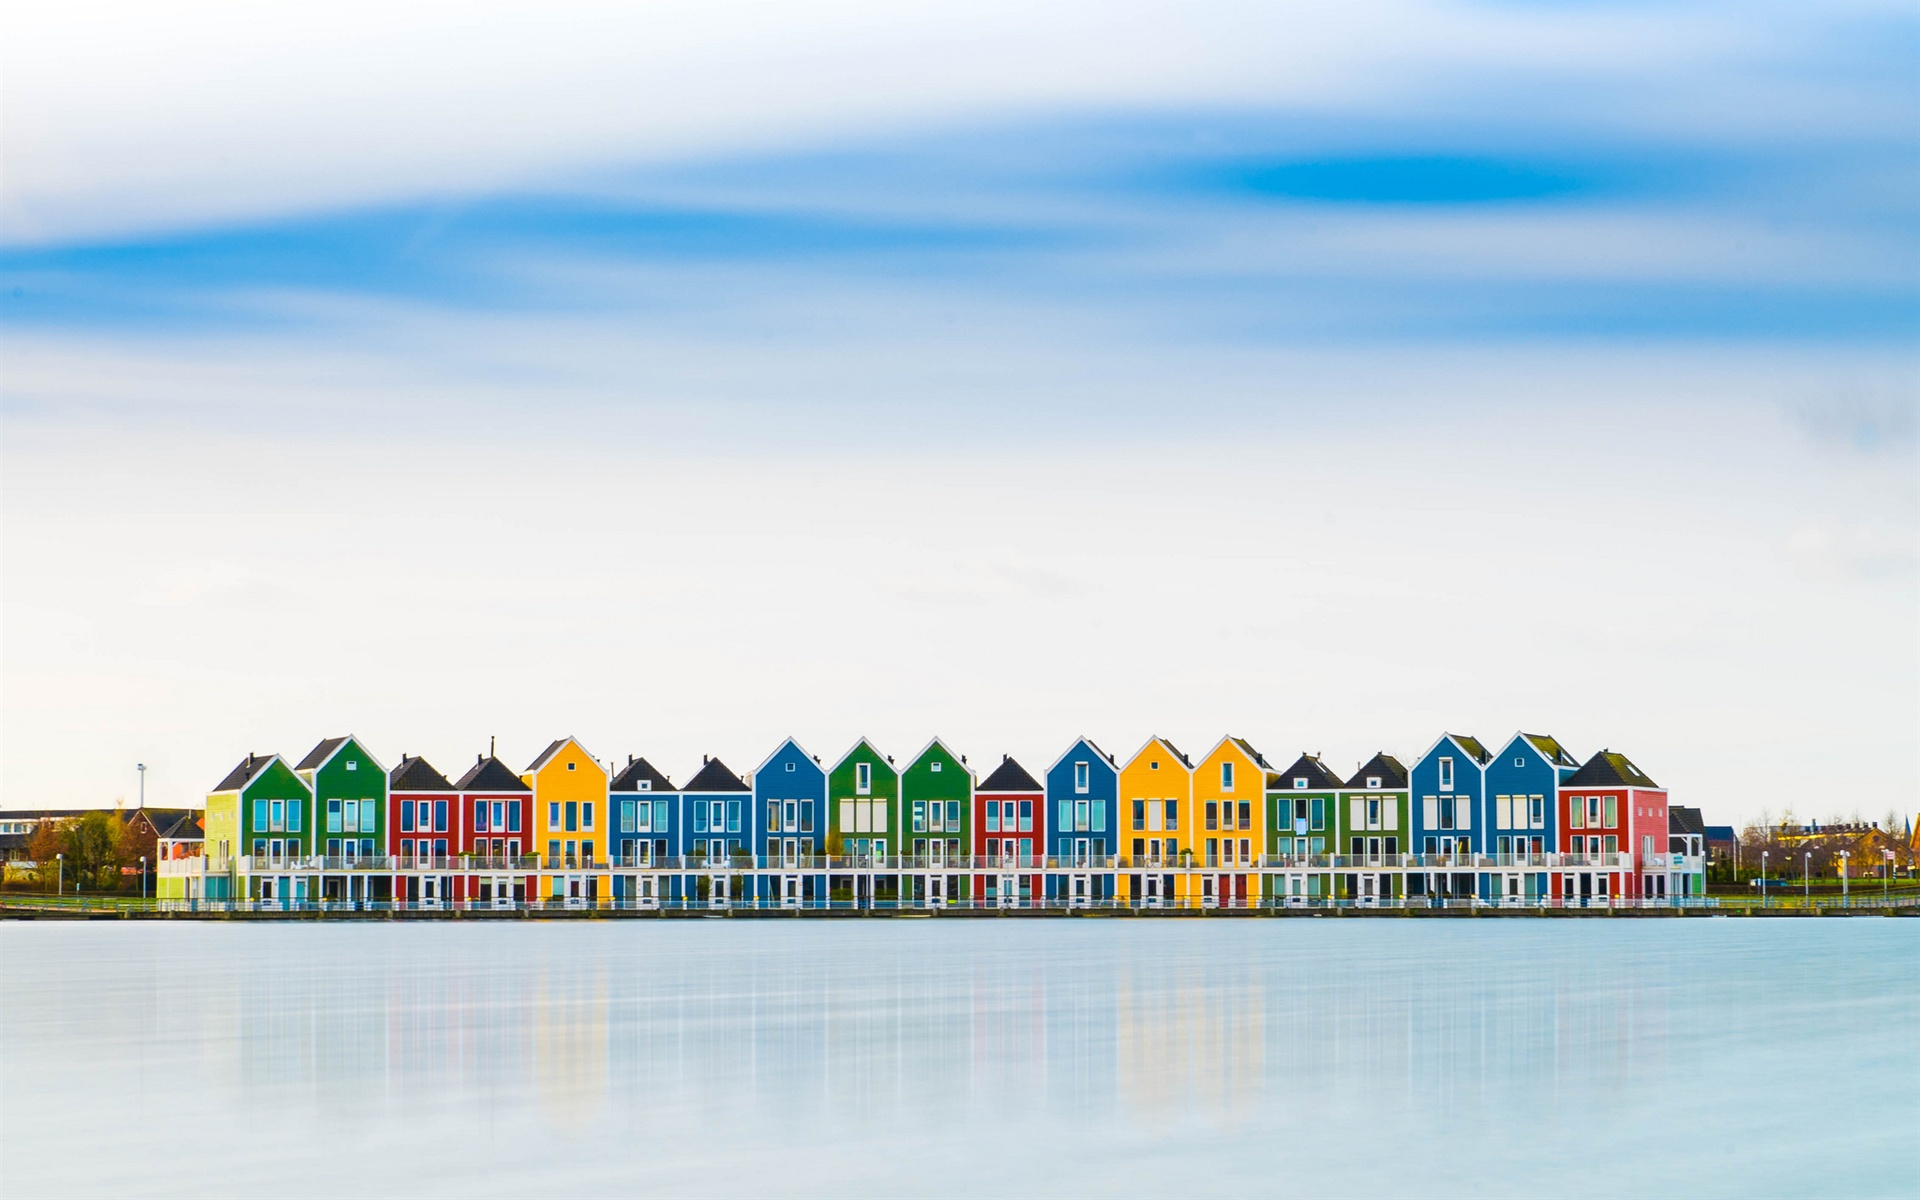 wallpaper netherlands colorful houses